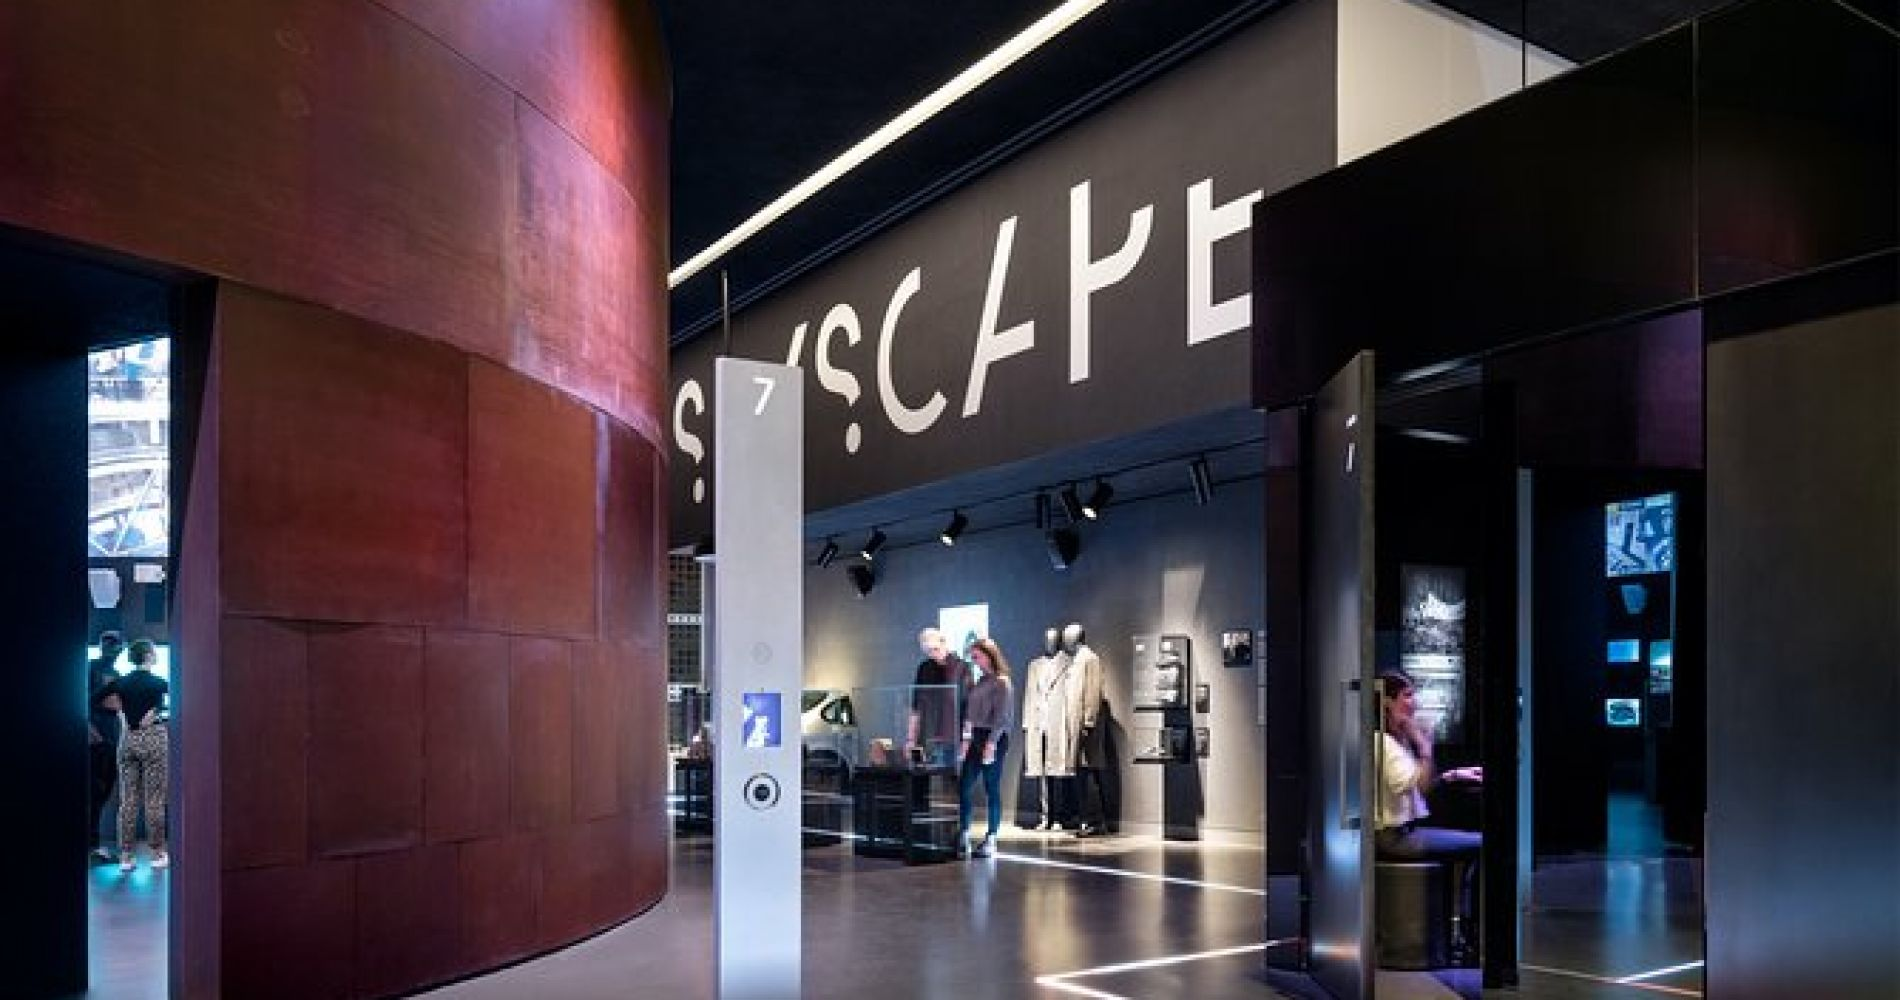 Spyscape Museum and Experience